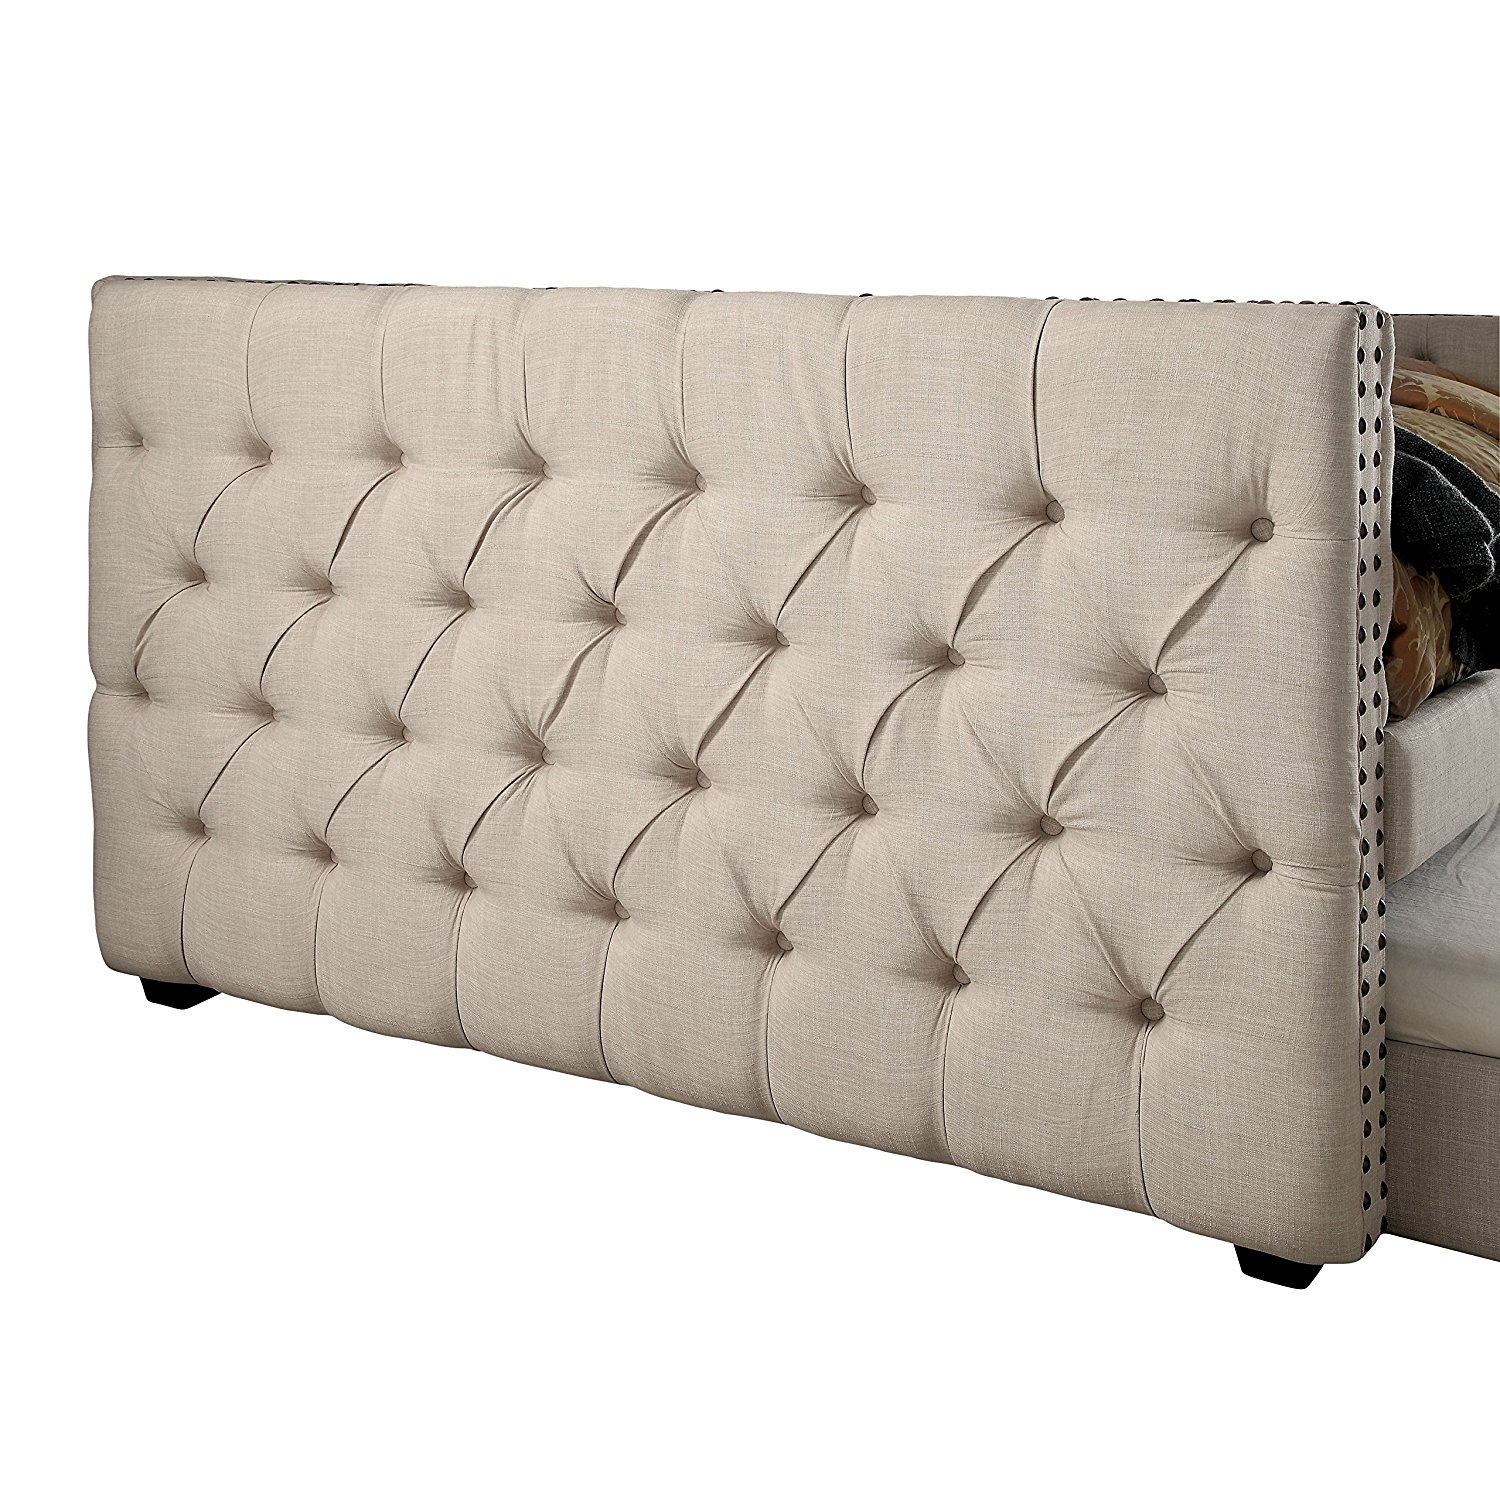 HOMES: Inside + Out IDF-1028F-2PC Handel Daybed Trundle Day Beds, Full, Ivory